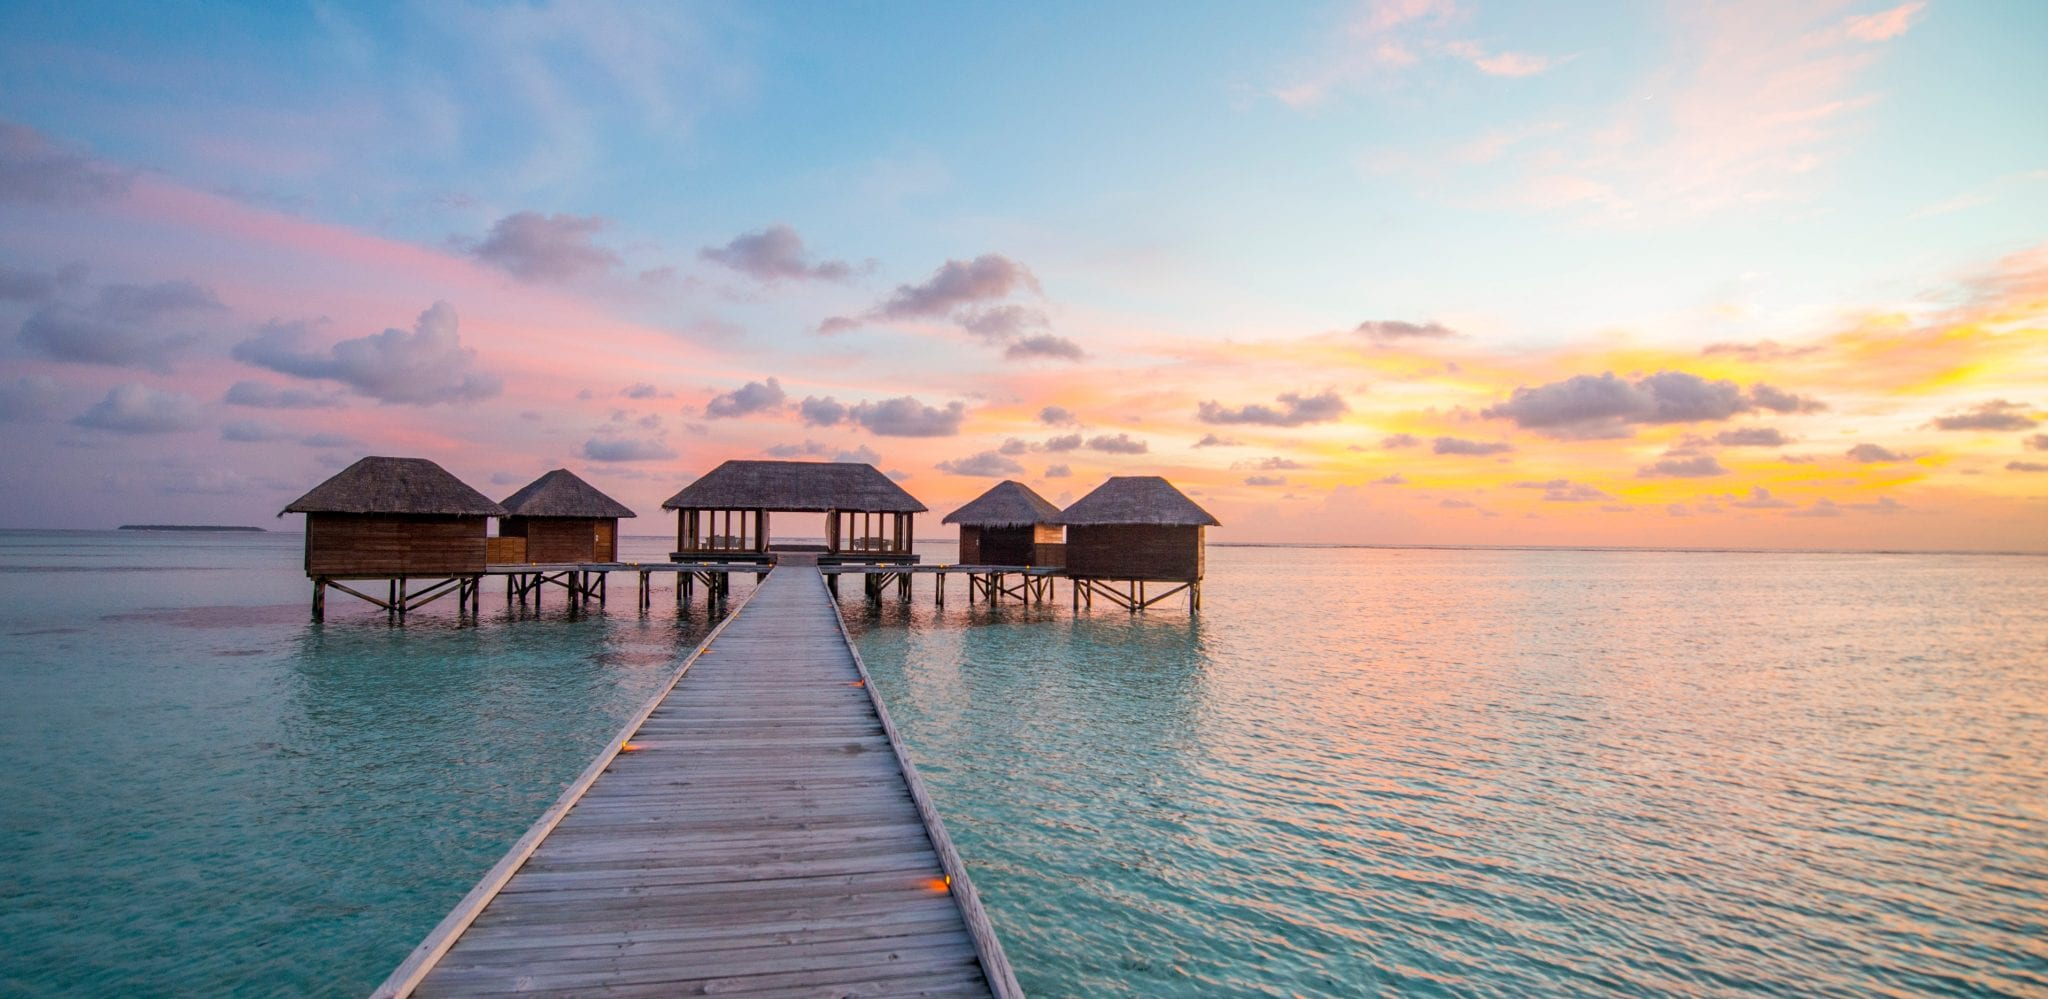 Six Tropical Getaways to Escape the Cold